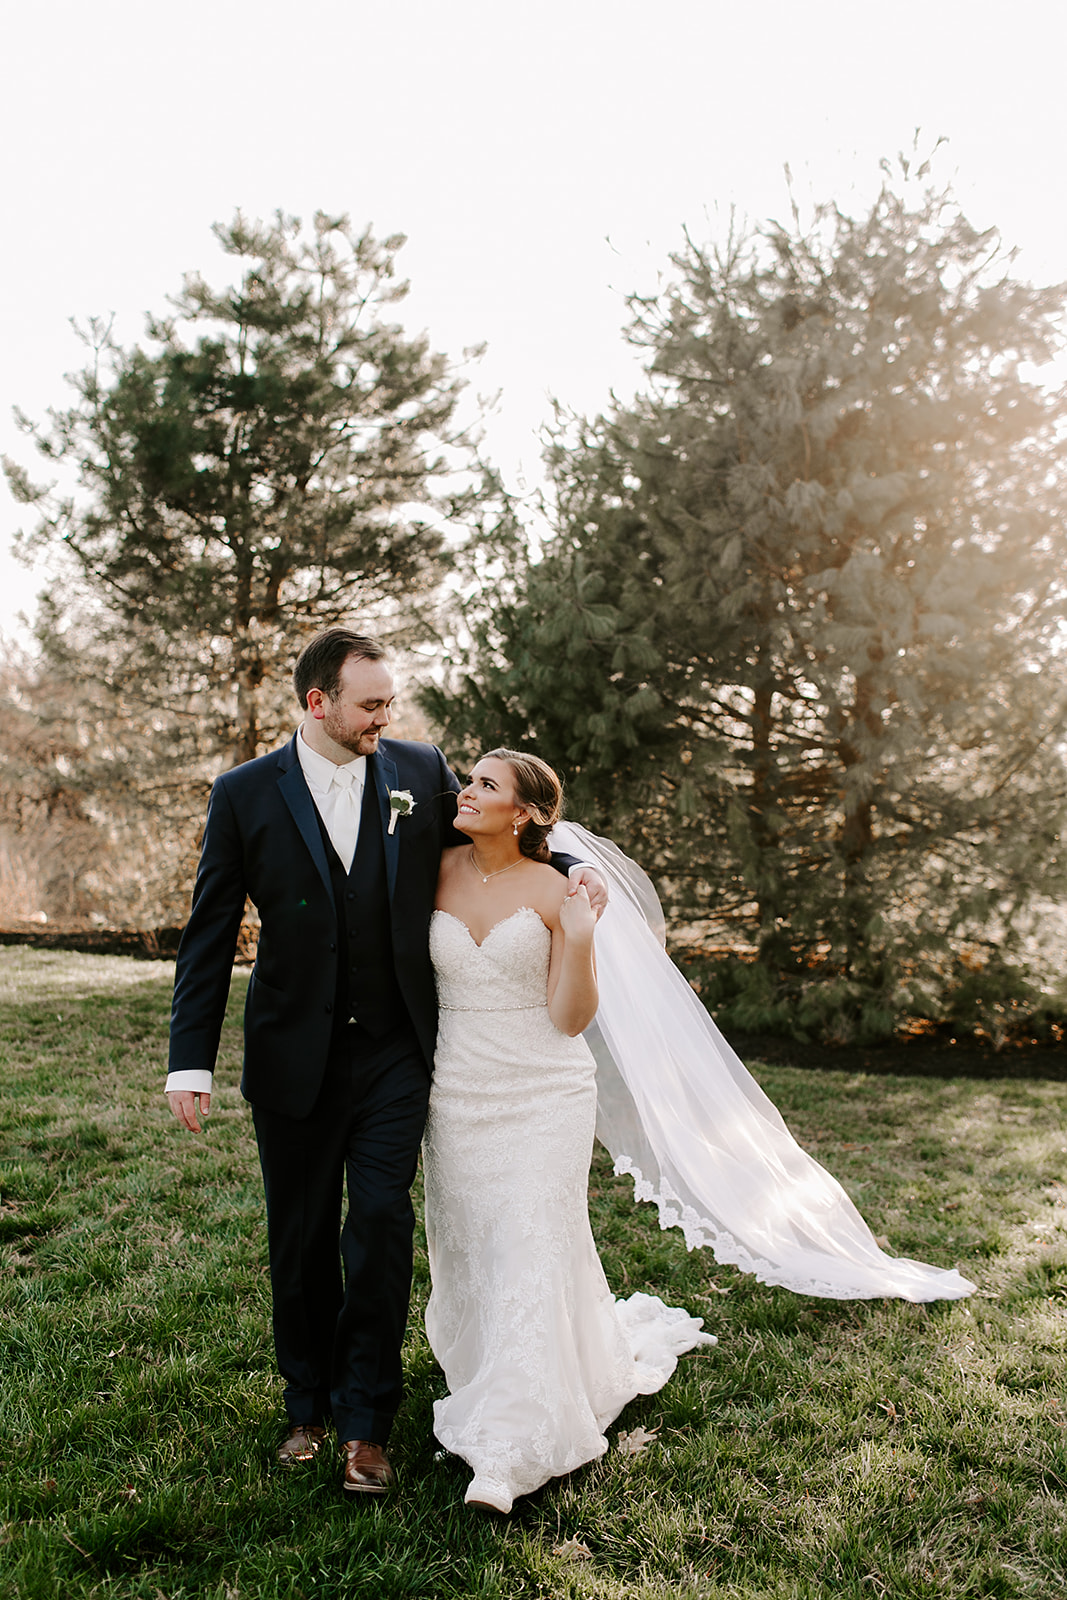 Lauren_and_Andrew_Mustard_Seed_Gardens_Noblesville_Indiana_by_Emily_Wehner_Photography-787.jpg